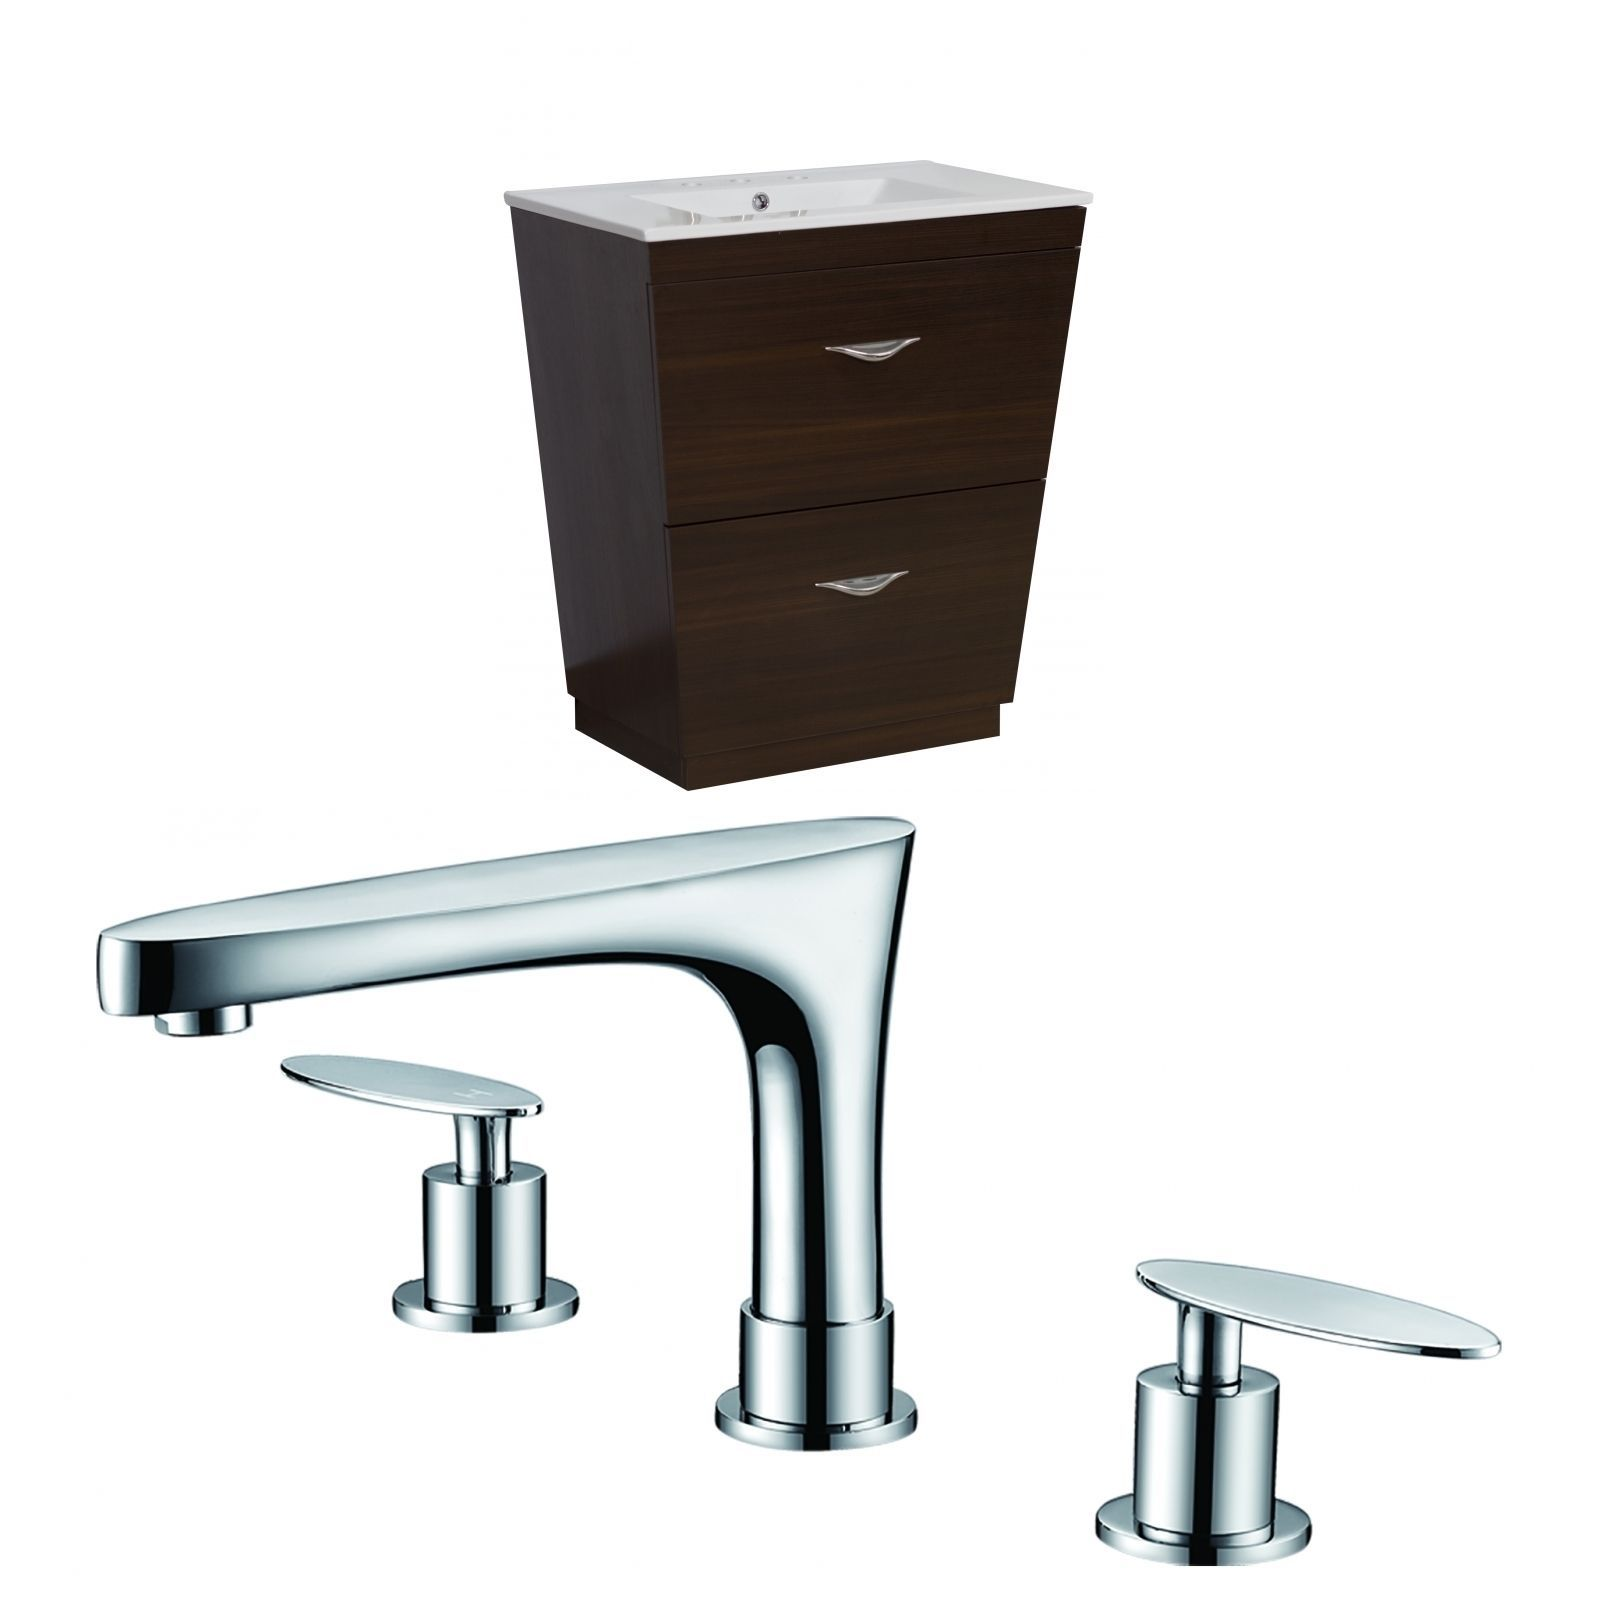 American Imaginations 28-in. W x 18.5-in. D Ply-Melamine Vanity Set In Wenge With 8-in. o.c. Cupc Faucet